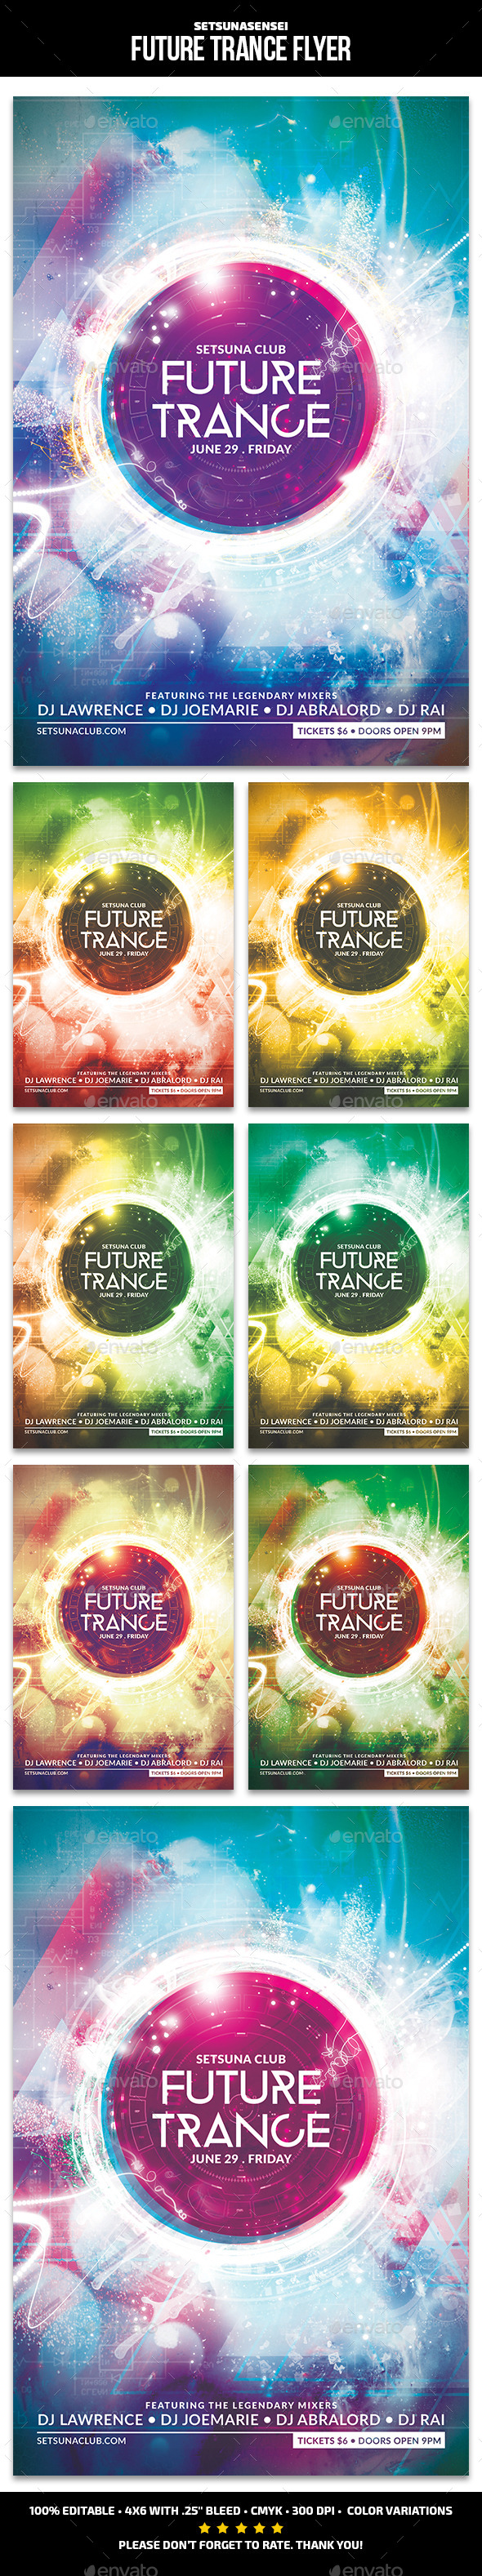 Future Trance Flyer - Clubs & Parties Events